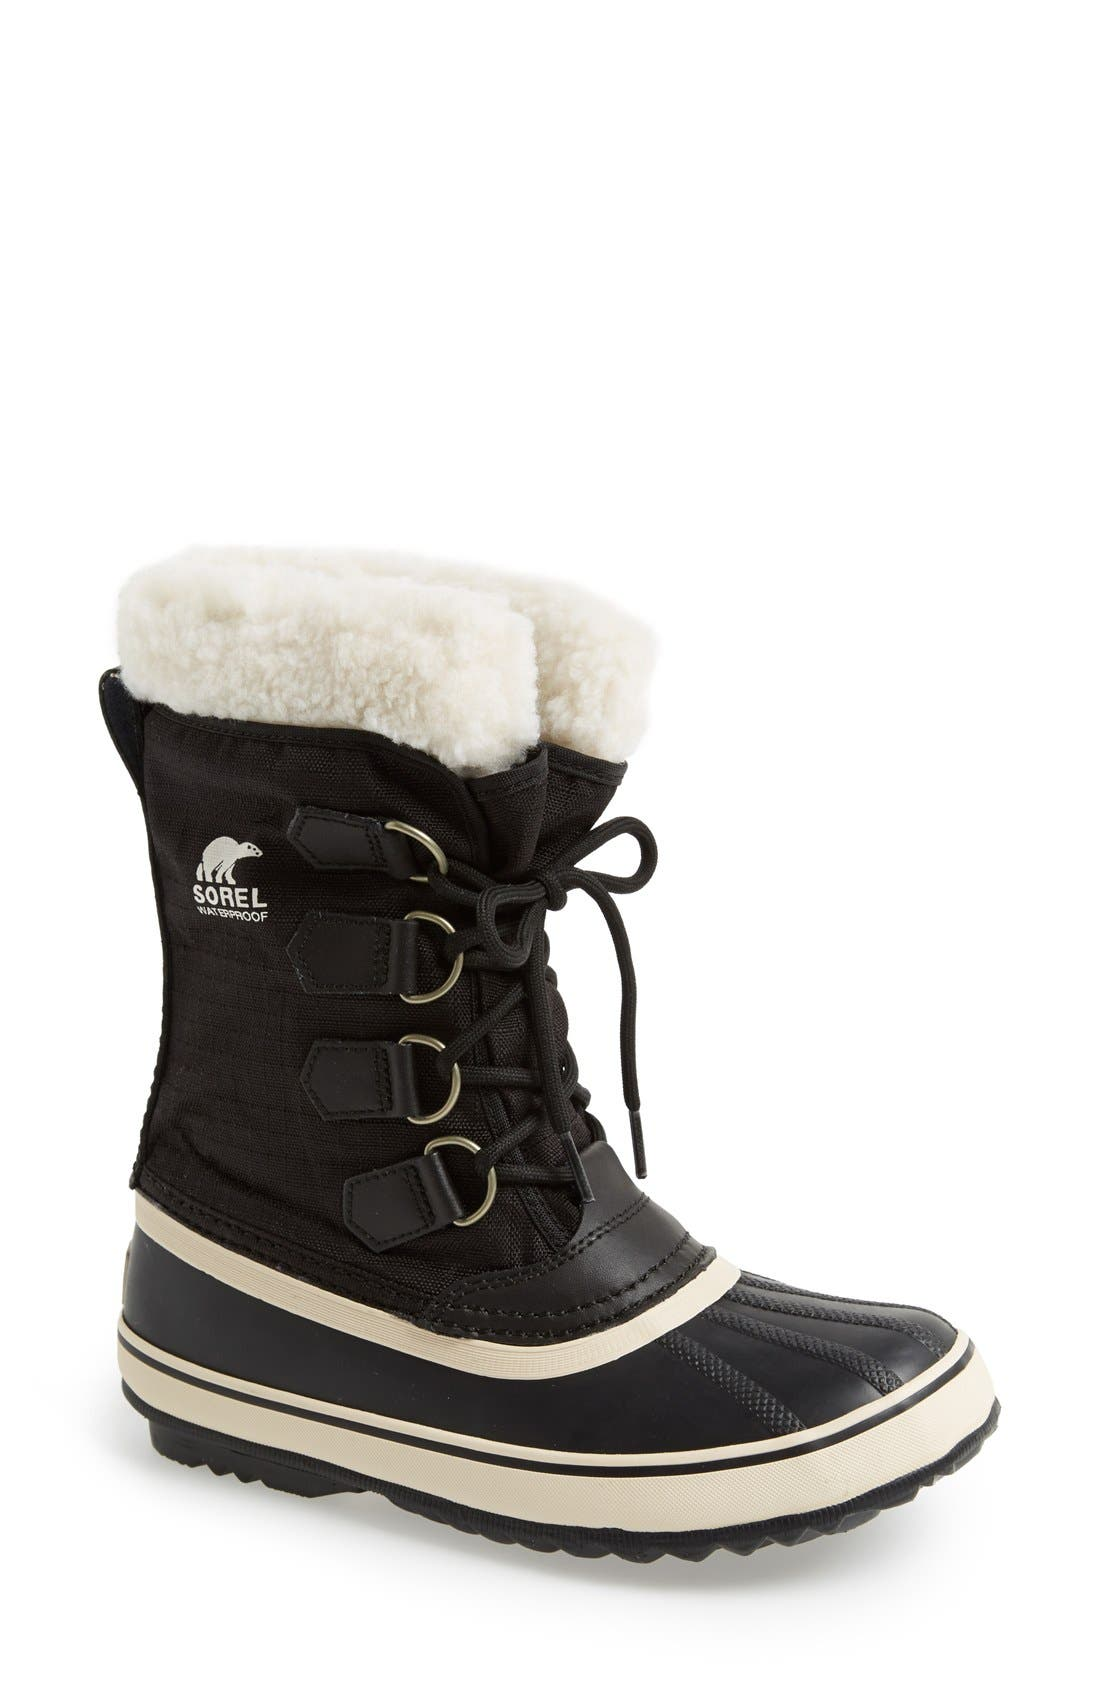 Alternate Image 1 Selected - SOREL 'Winter Carnival' Boot (Women)